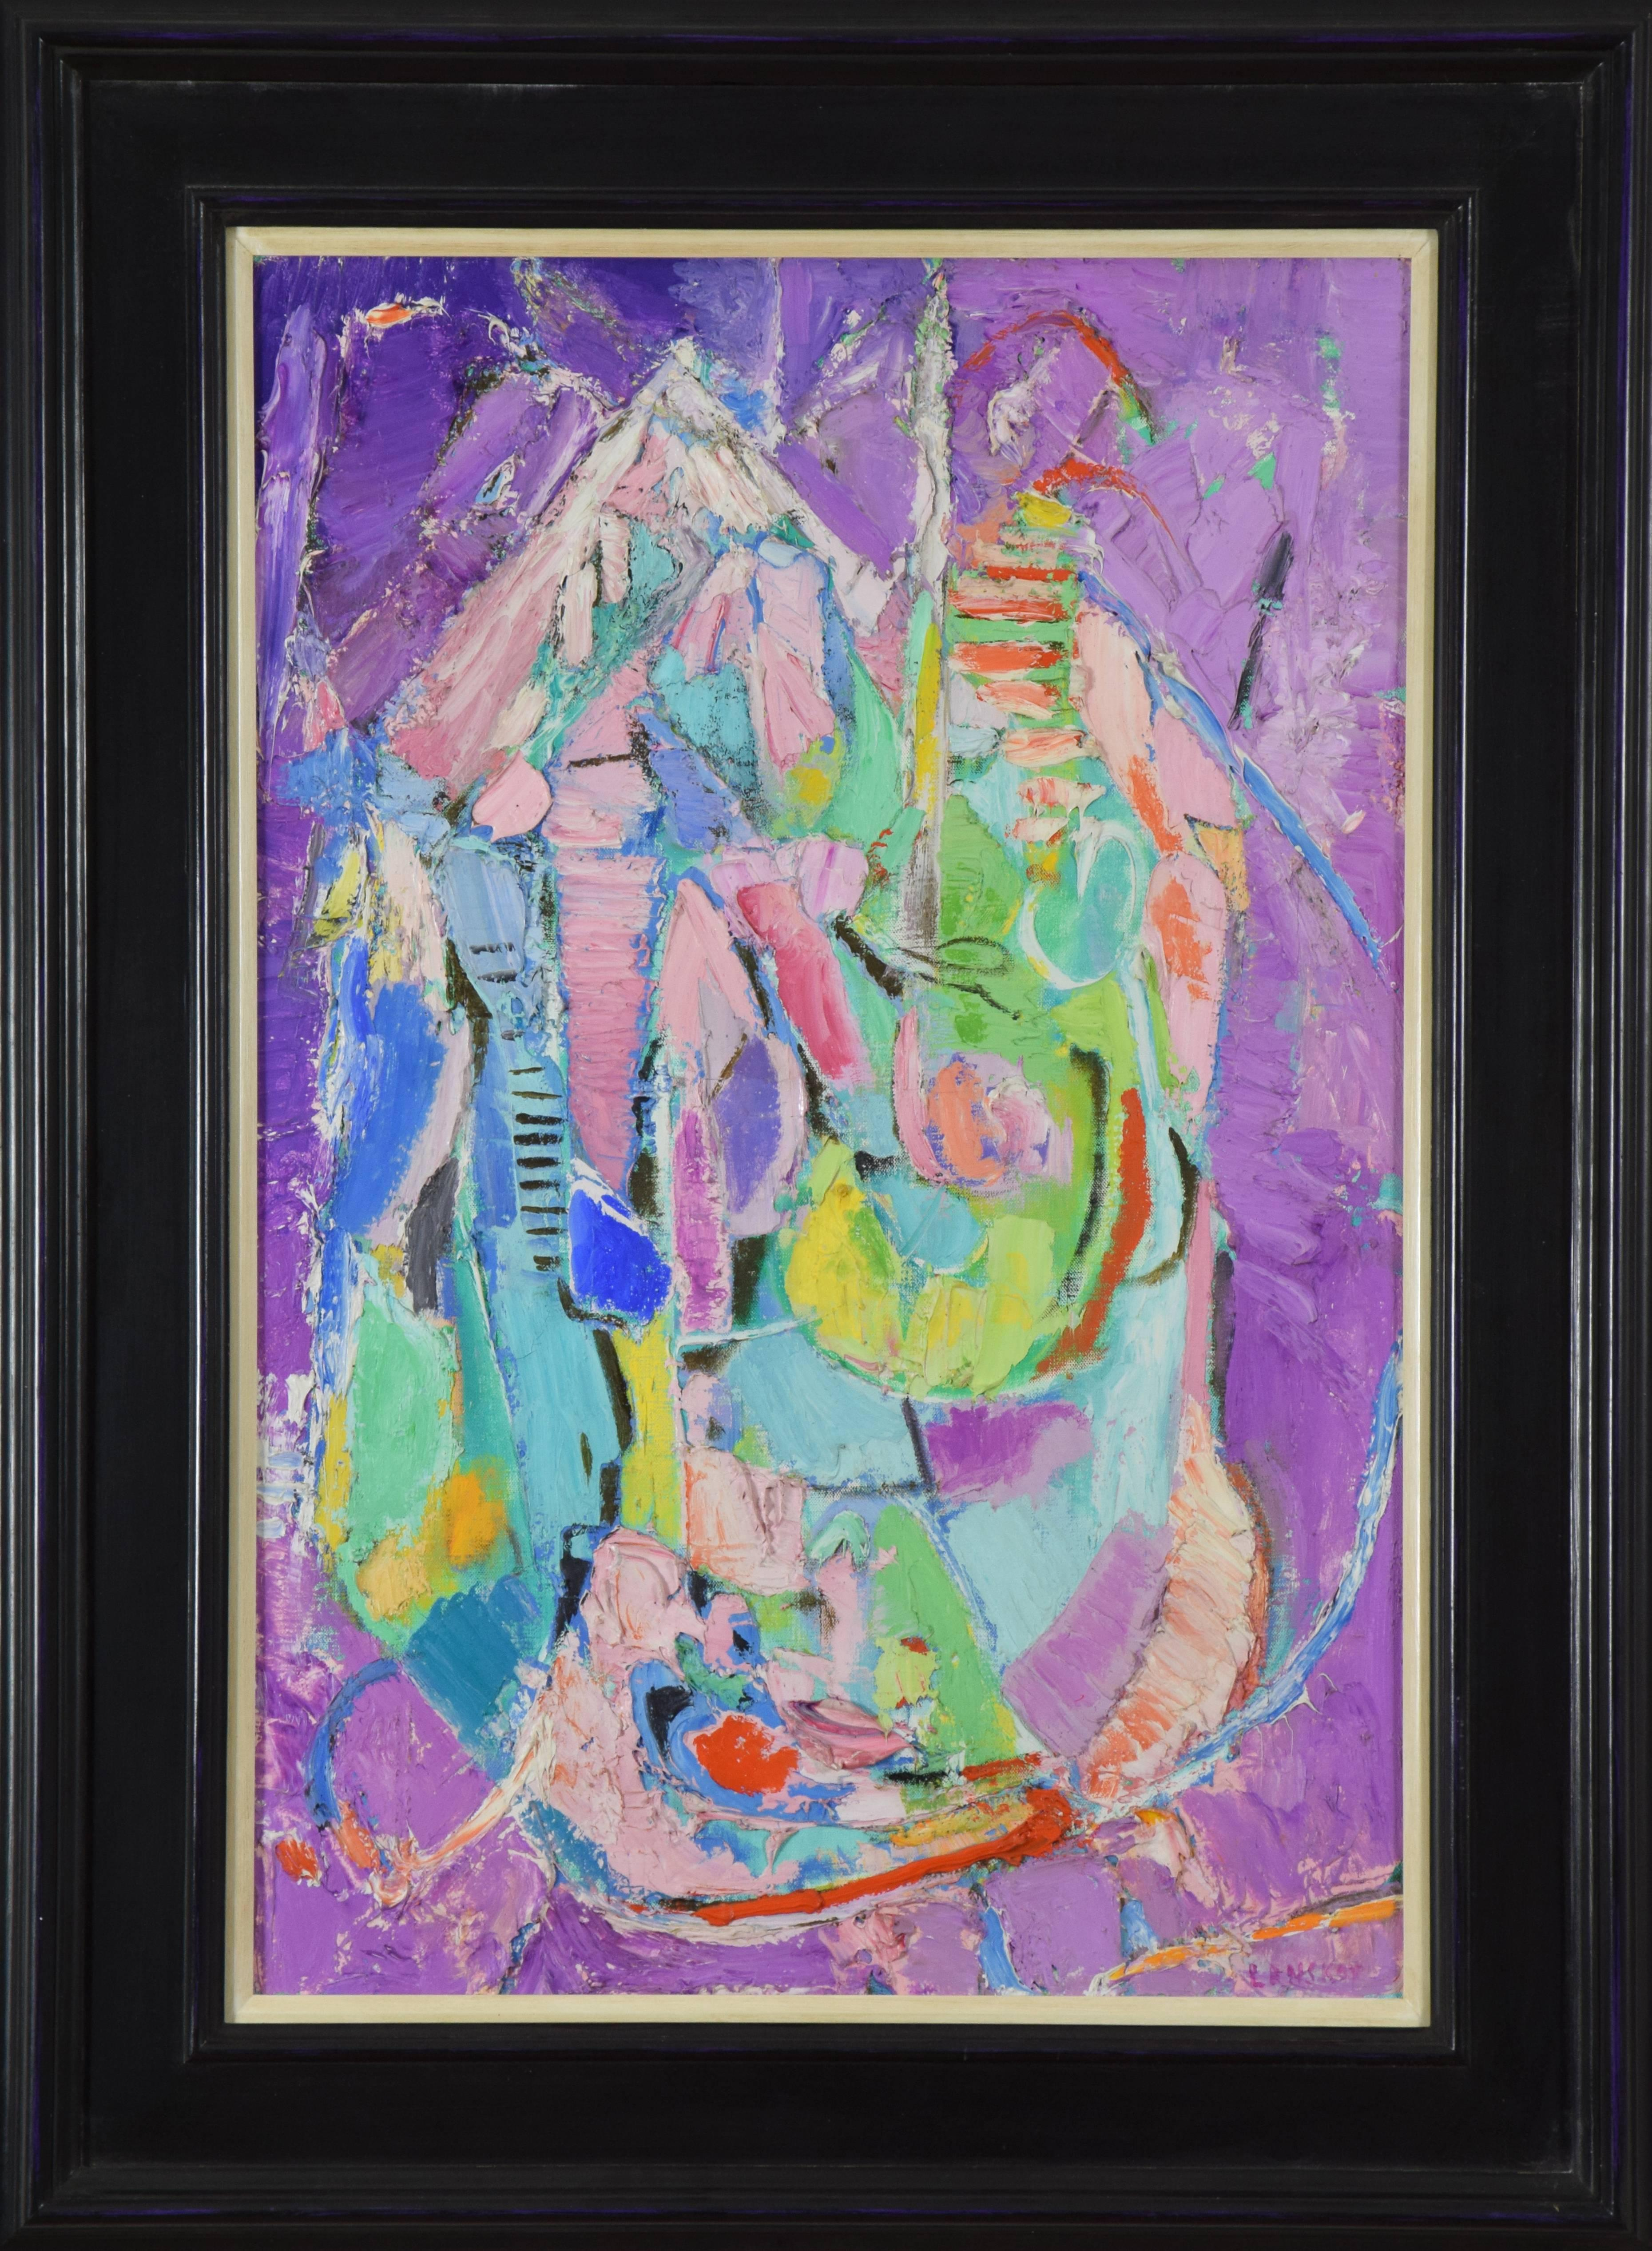 Composition by ANDRÉ LANSKOY - Abstract painting, colourful art